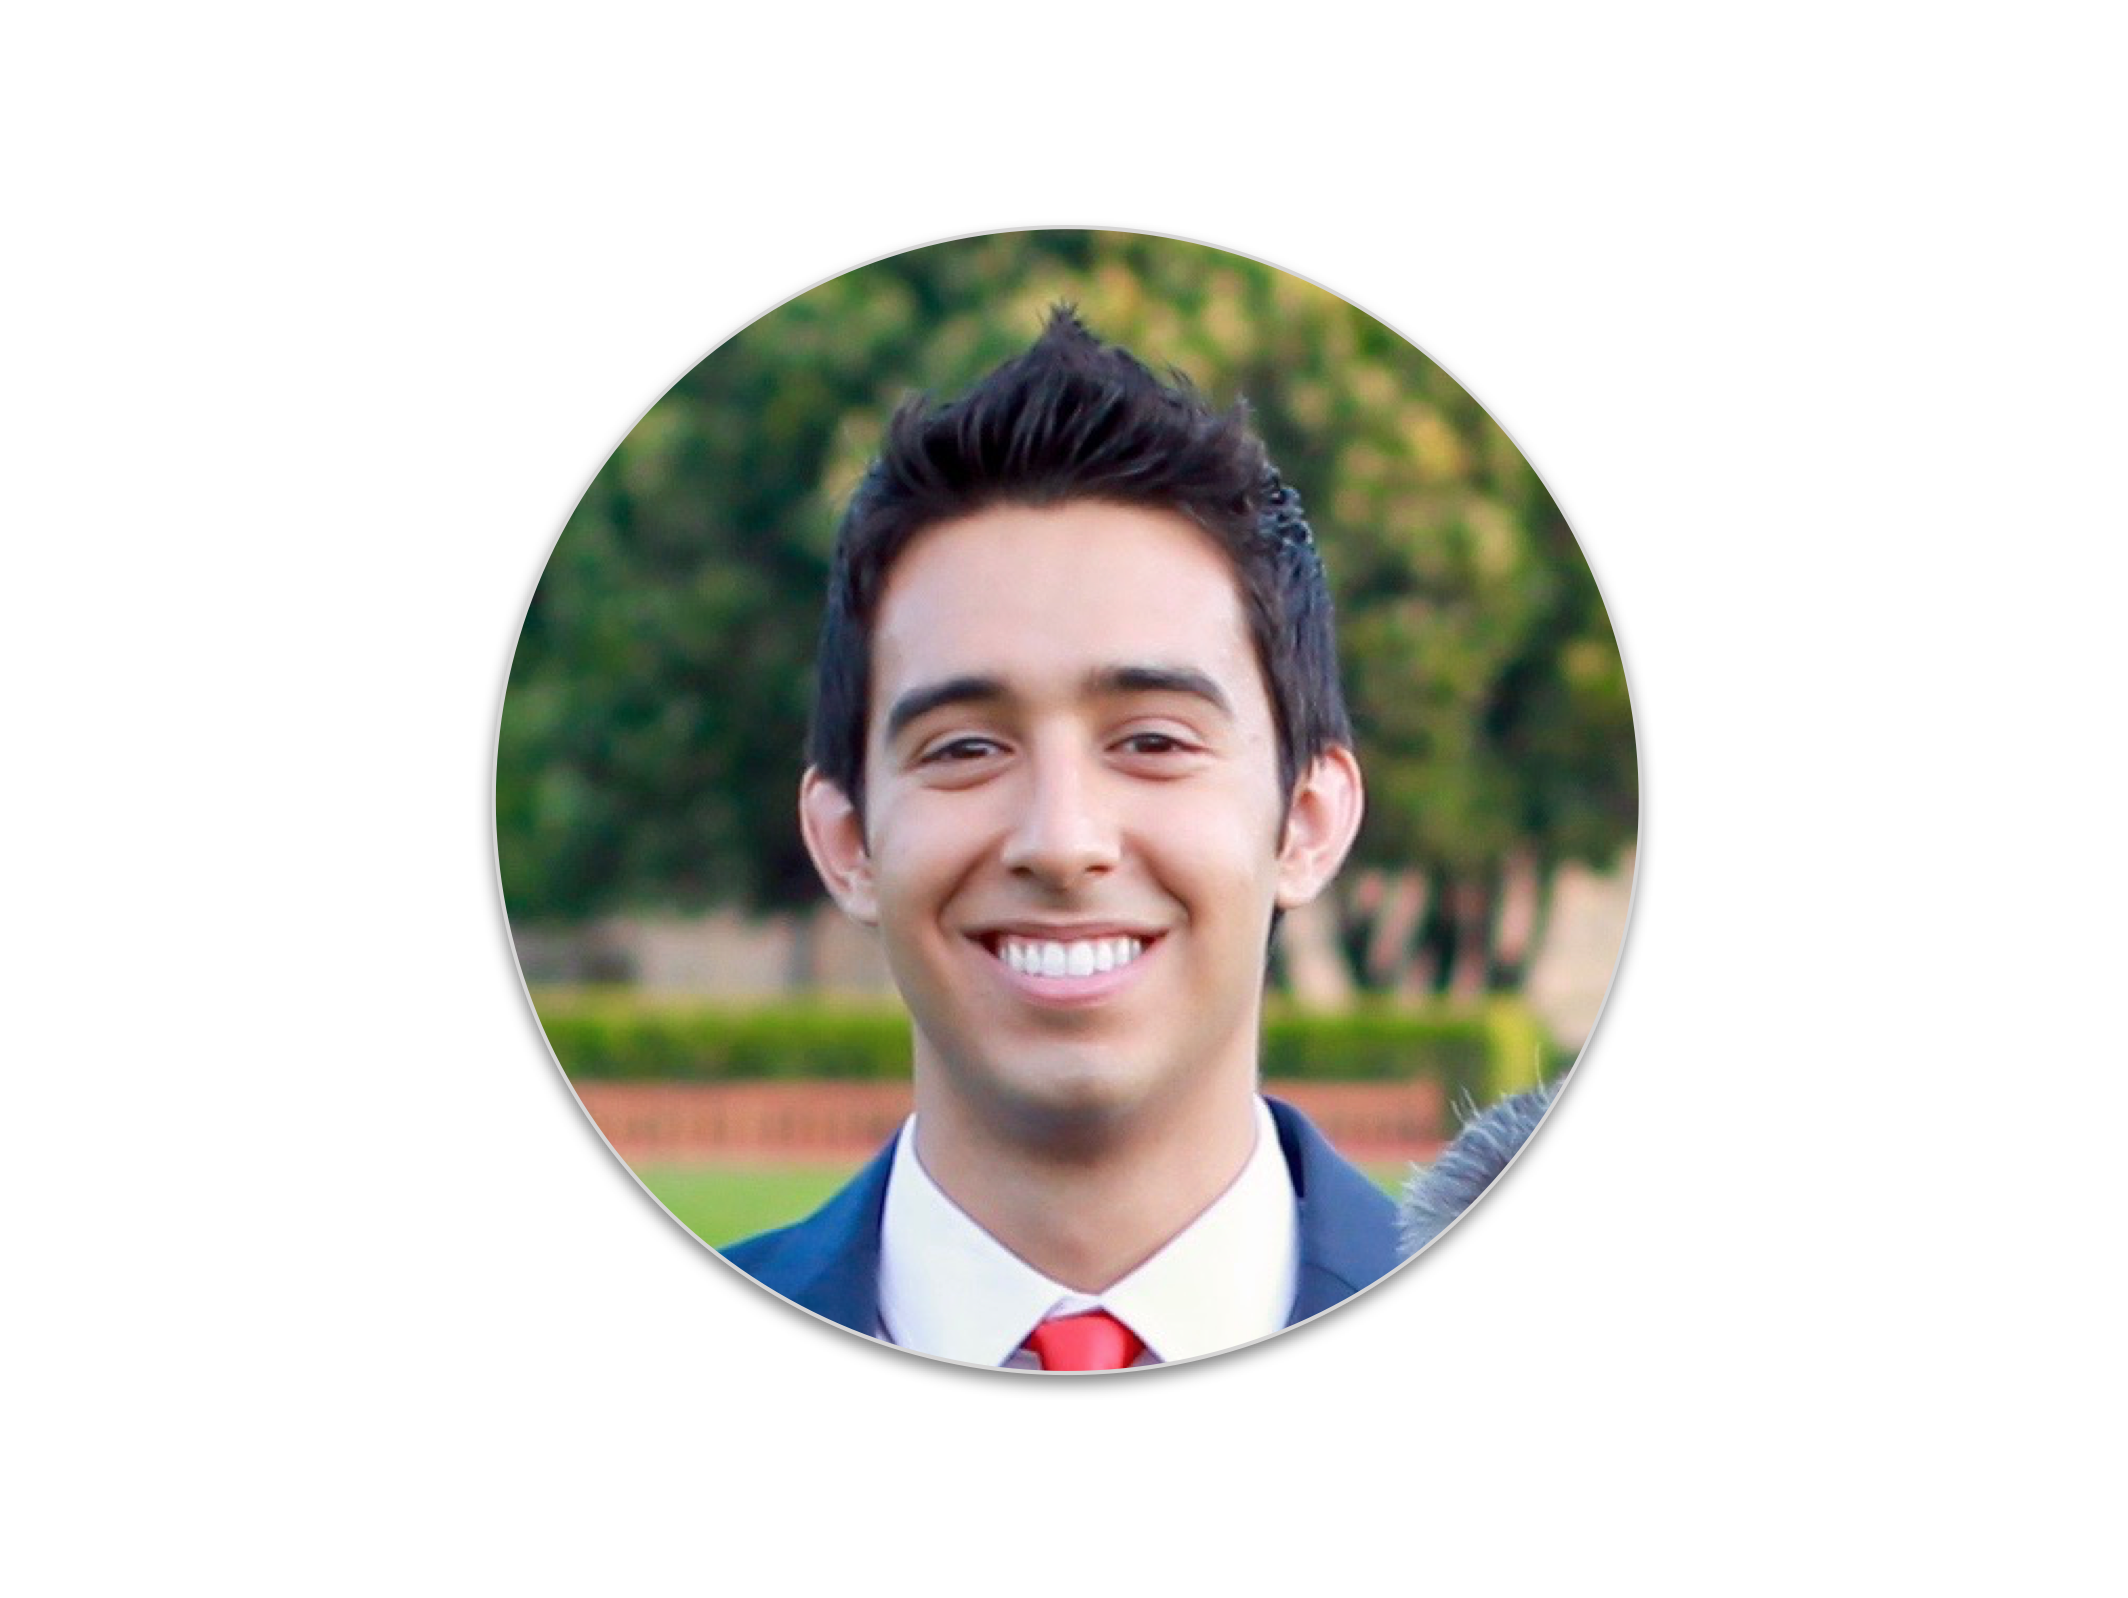 Joshua Mendoza - FOUNDER, EXECUTIVE DIRECTORJoshua Mendoza is passionate about empowering others to reach their full potential. This passion comes from his own story coming from a low-income background and—with the help of friends, family, and mentors—going on to graduate from Stanford University and working as an engineer in Silicon Valley. He is also passionate about real estate investing and coaches professionals to reconcile their careers with the legacy they wish to leave behind.